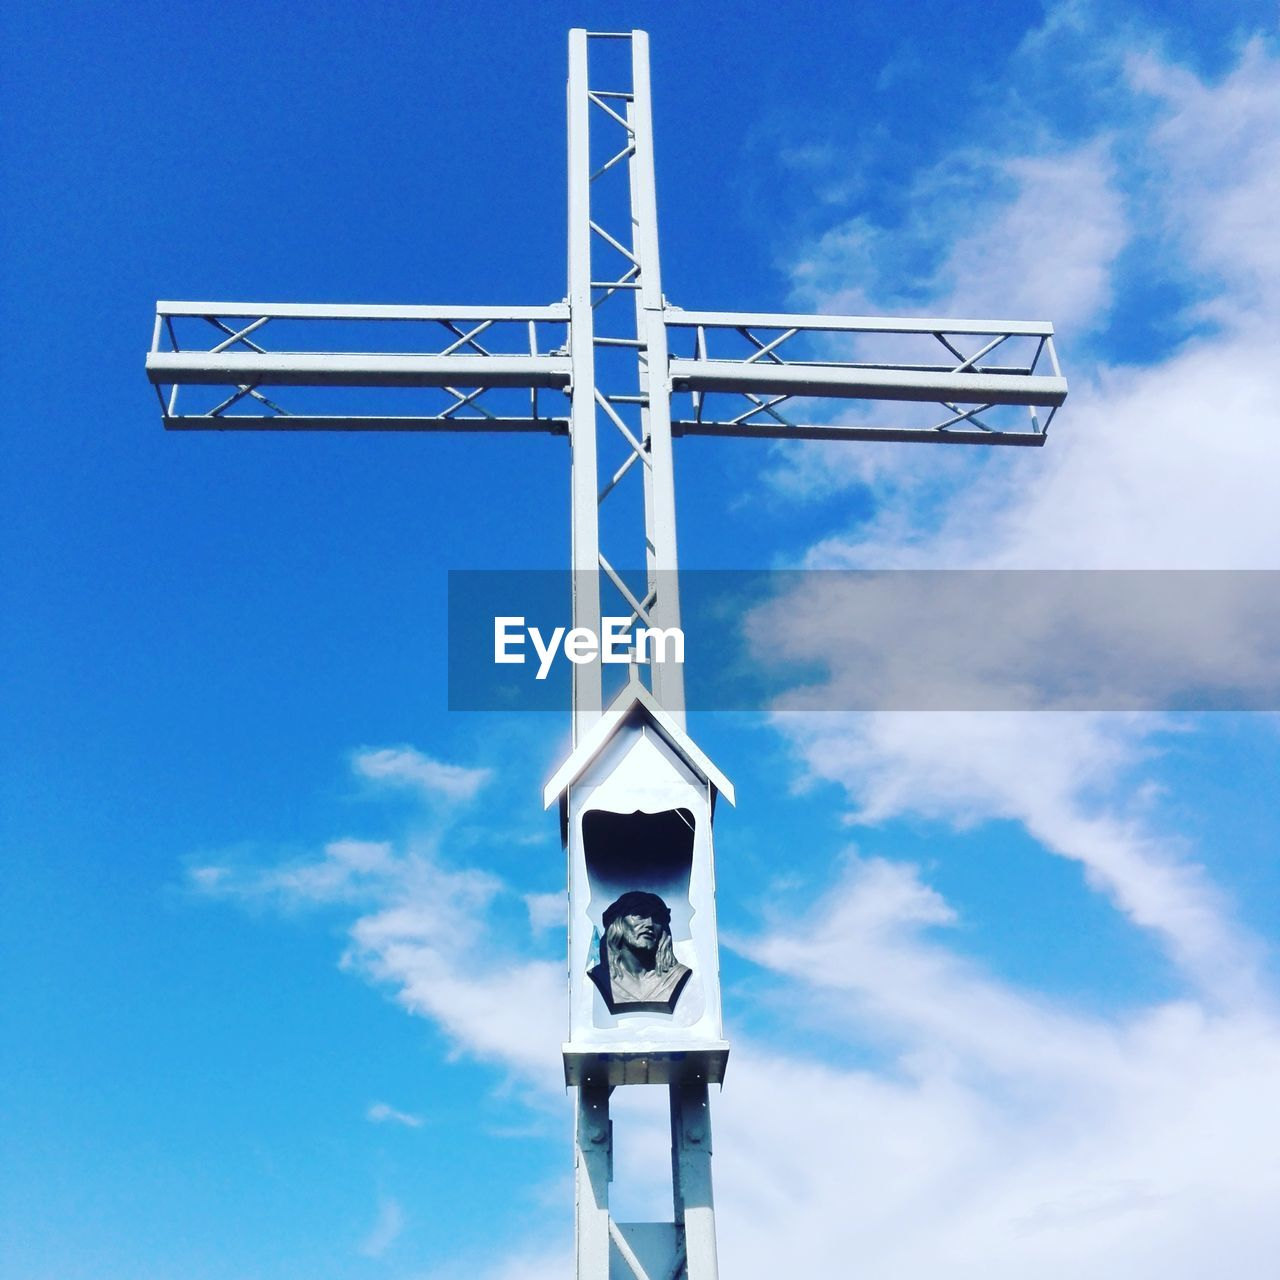 sky, cloud - sky, low angle view, blue, nature, day, no people, outdoors, metal, sunlight, belief, religion, spirituality, architecture, cross, built structure, technology, fuel and power generation, tower